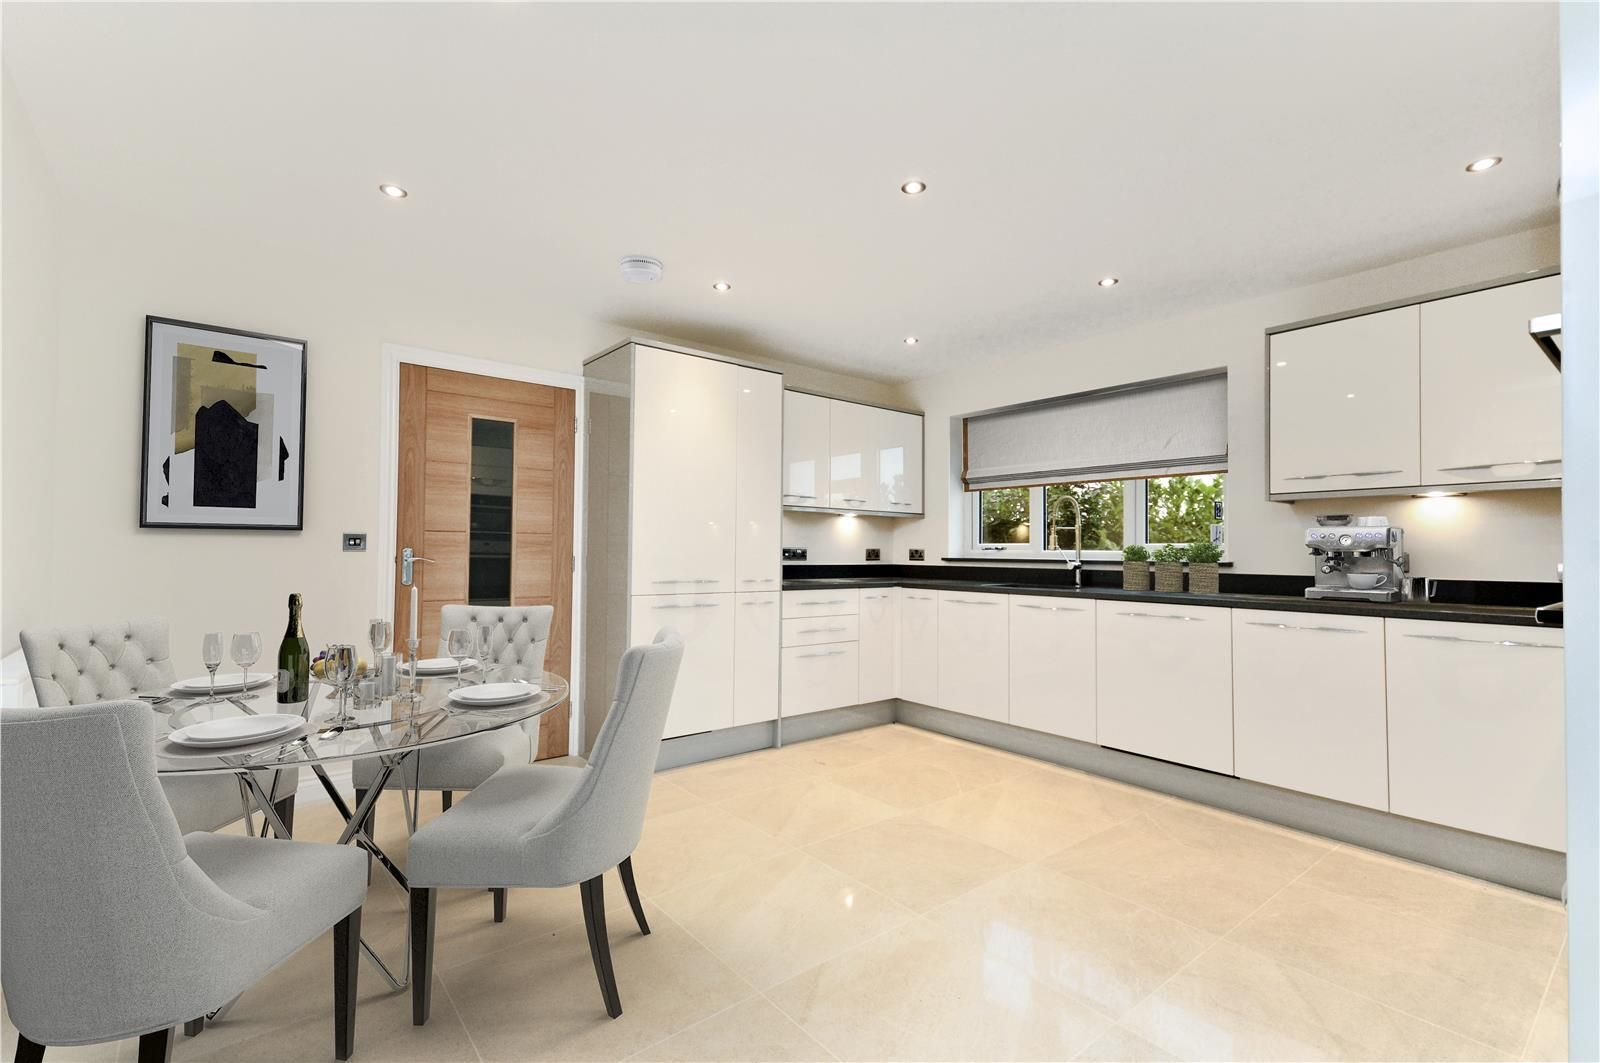 4 bed detached for sale in Kings Acre 6